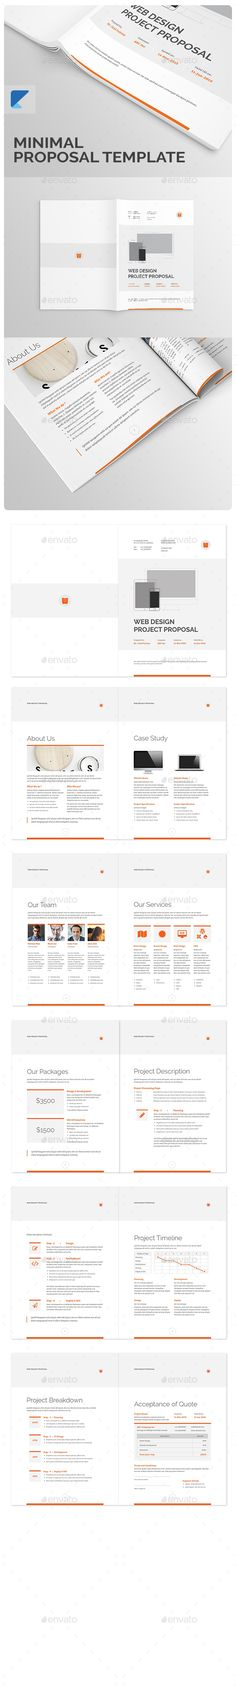 invoice Template and Stationary design - web design quote template